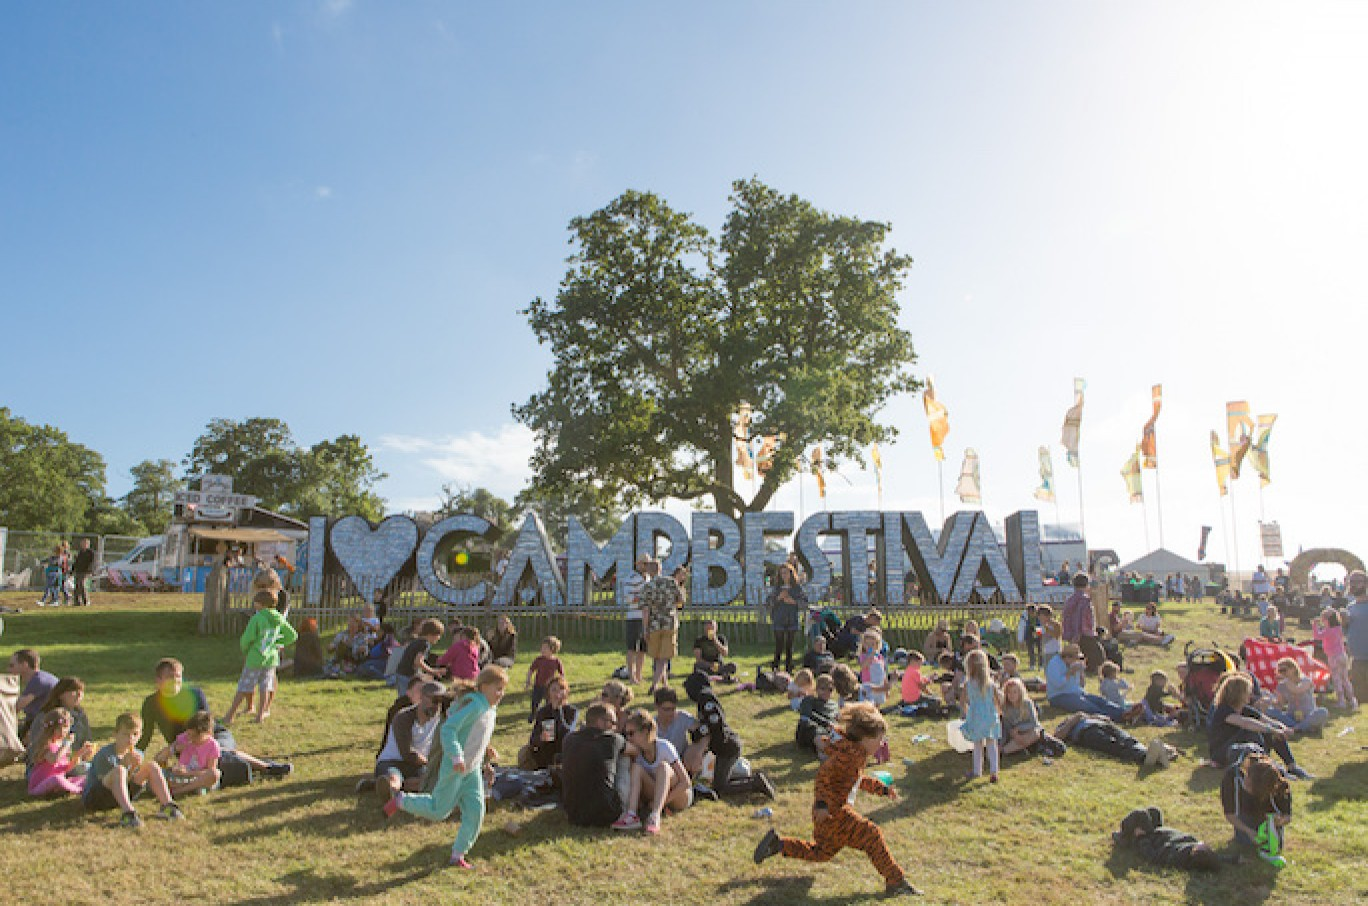 6_3-camp-bestival-thursday-0931501584971